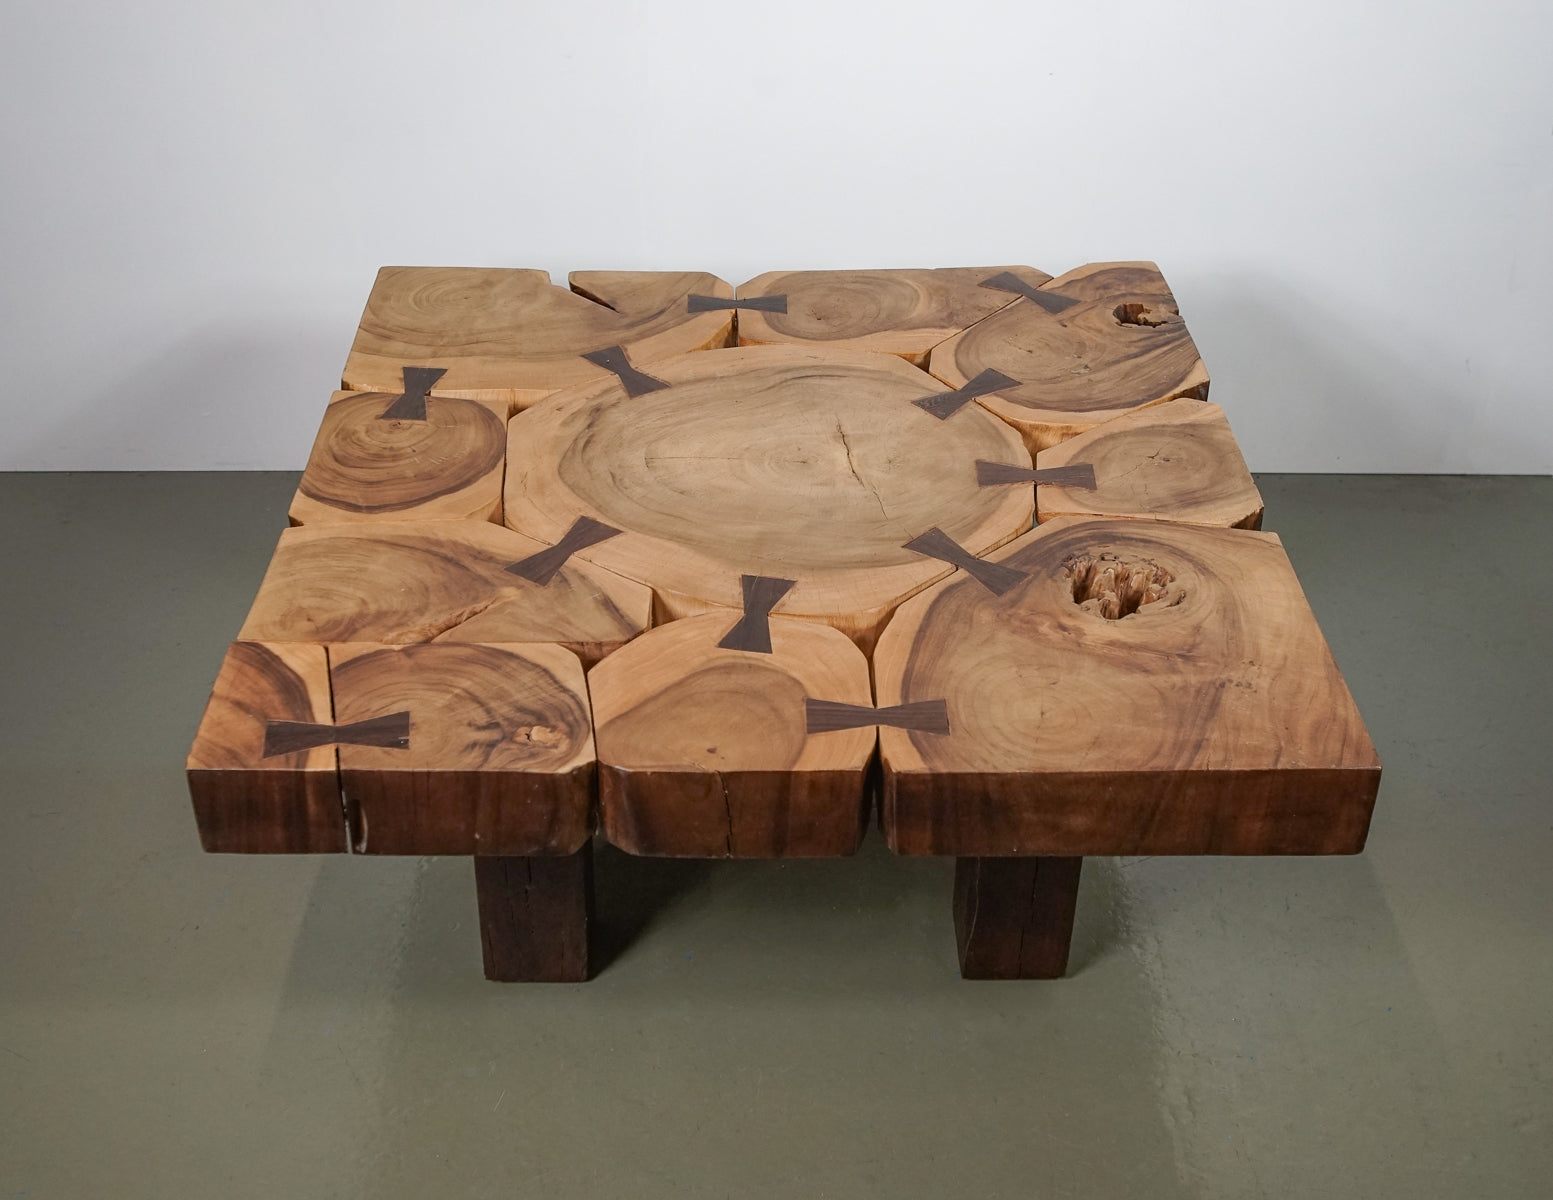 (Fast No-Contact Delivery) Bespoke Wooden Log Coffee Table